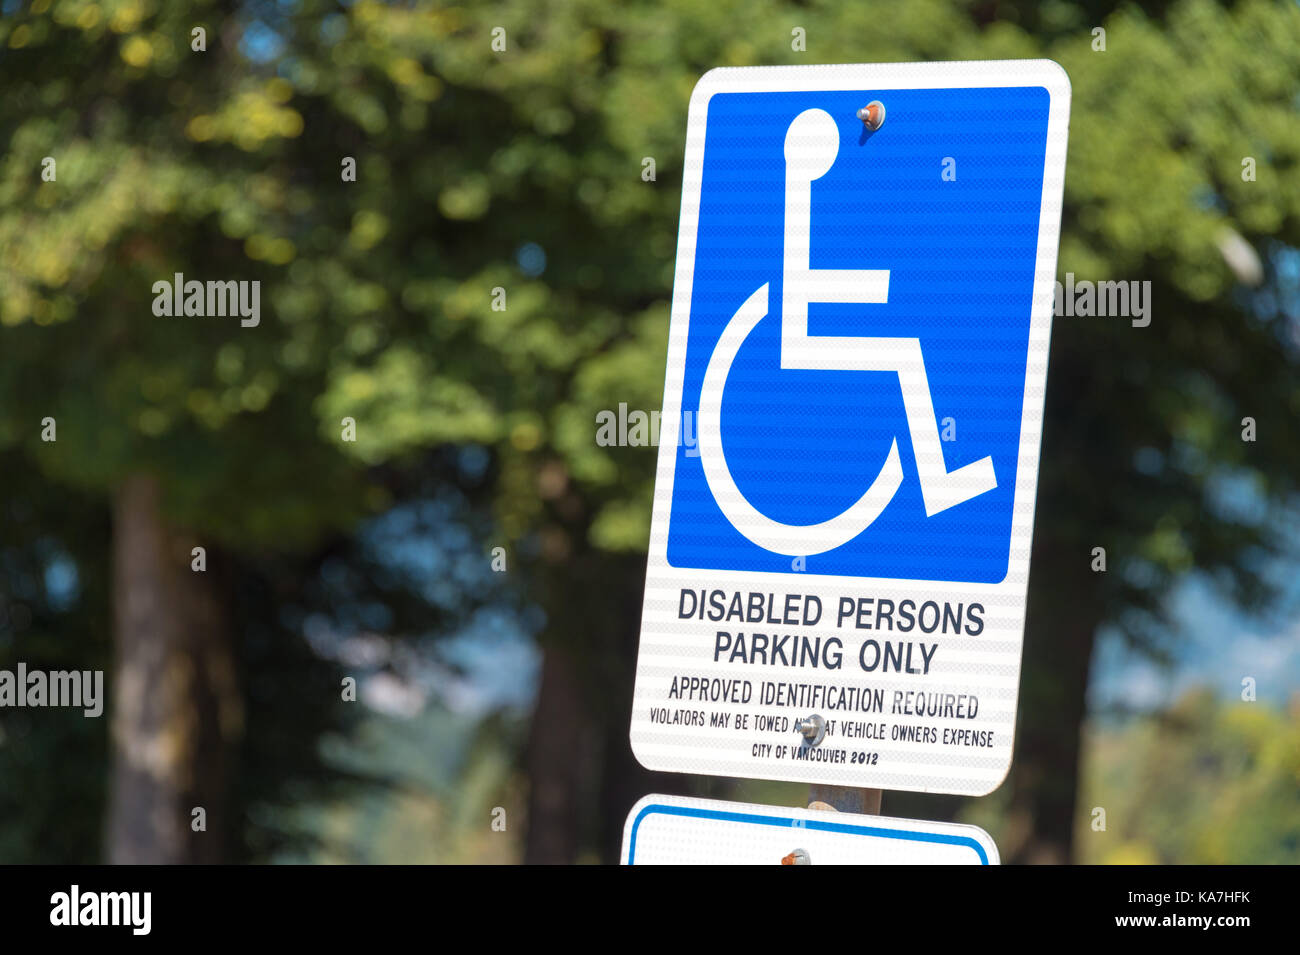 Vancouver, British Columbia, Canada - 14 September 2017 - Disabled parking only sign - Stock Image